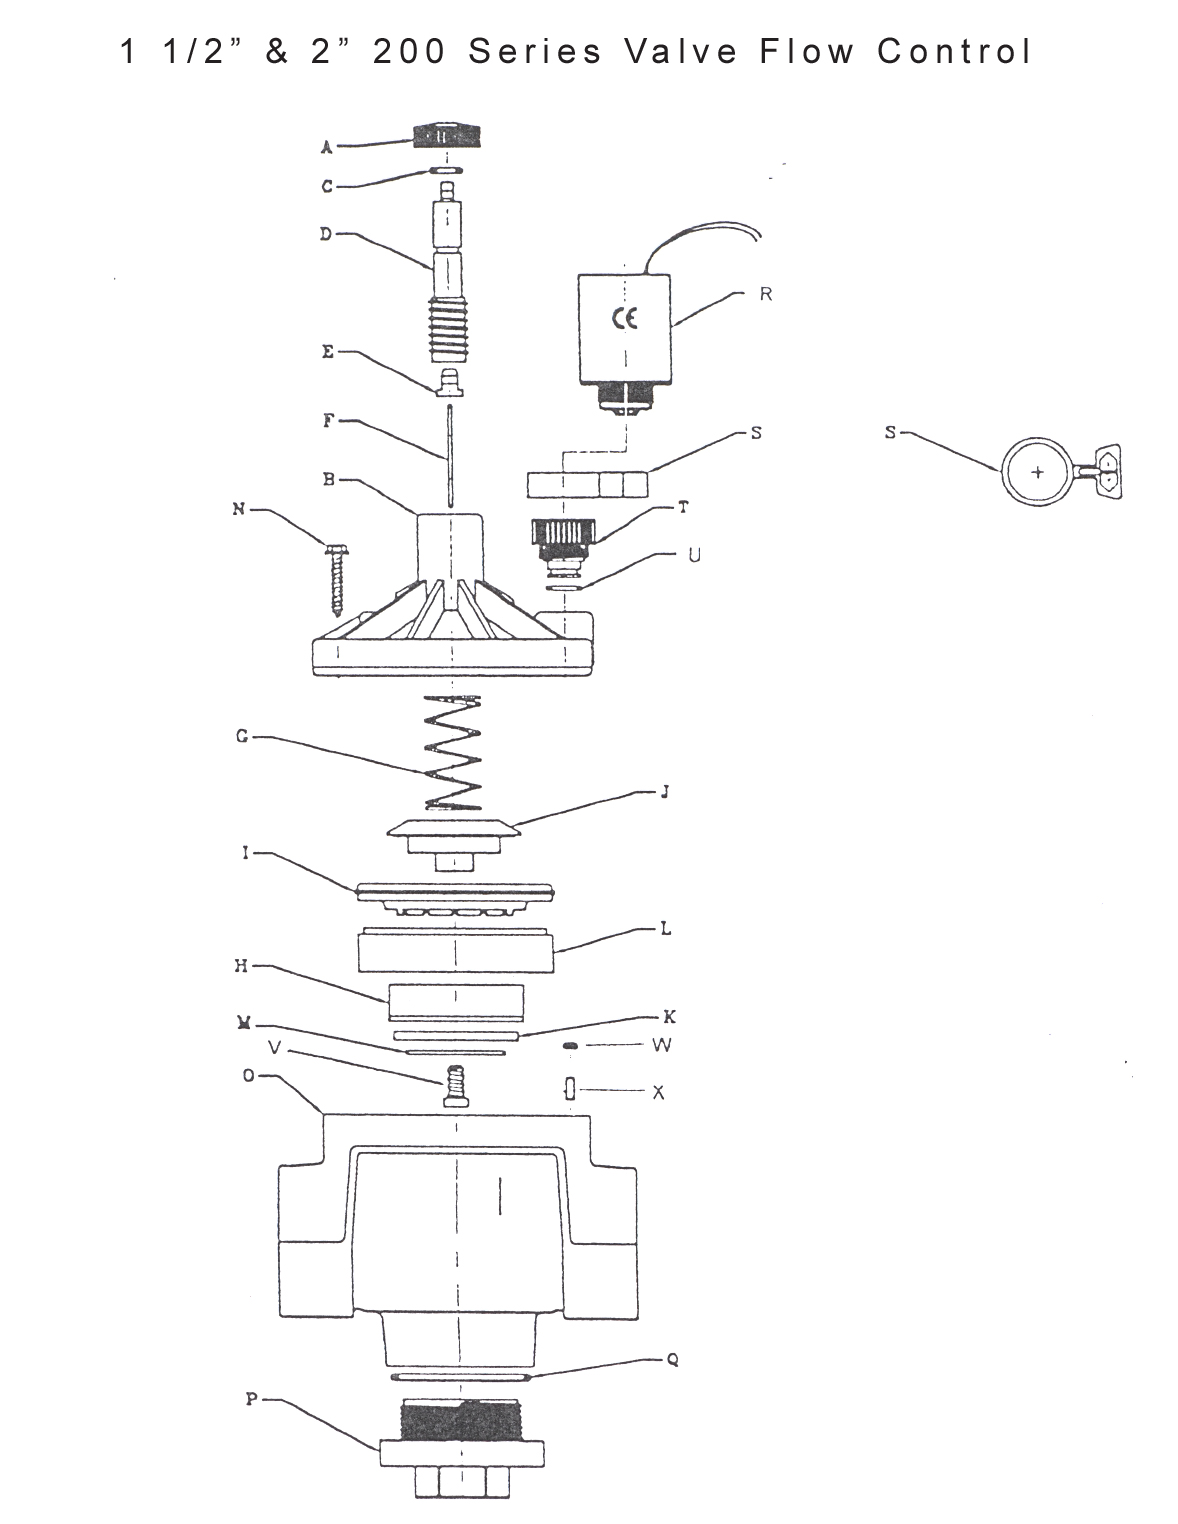 hight resolution of valve assembly drawings 100 series 1 inch flow control